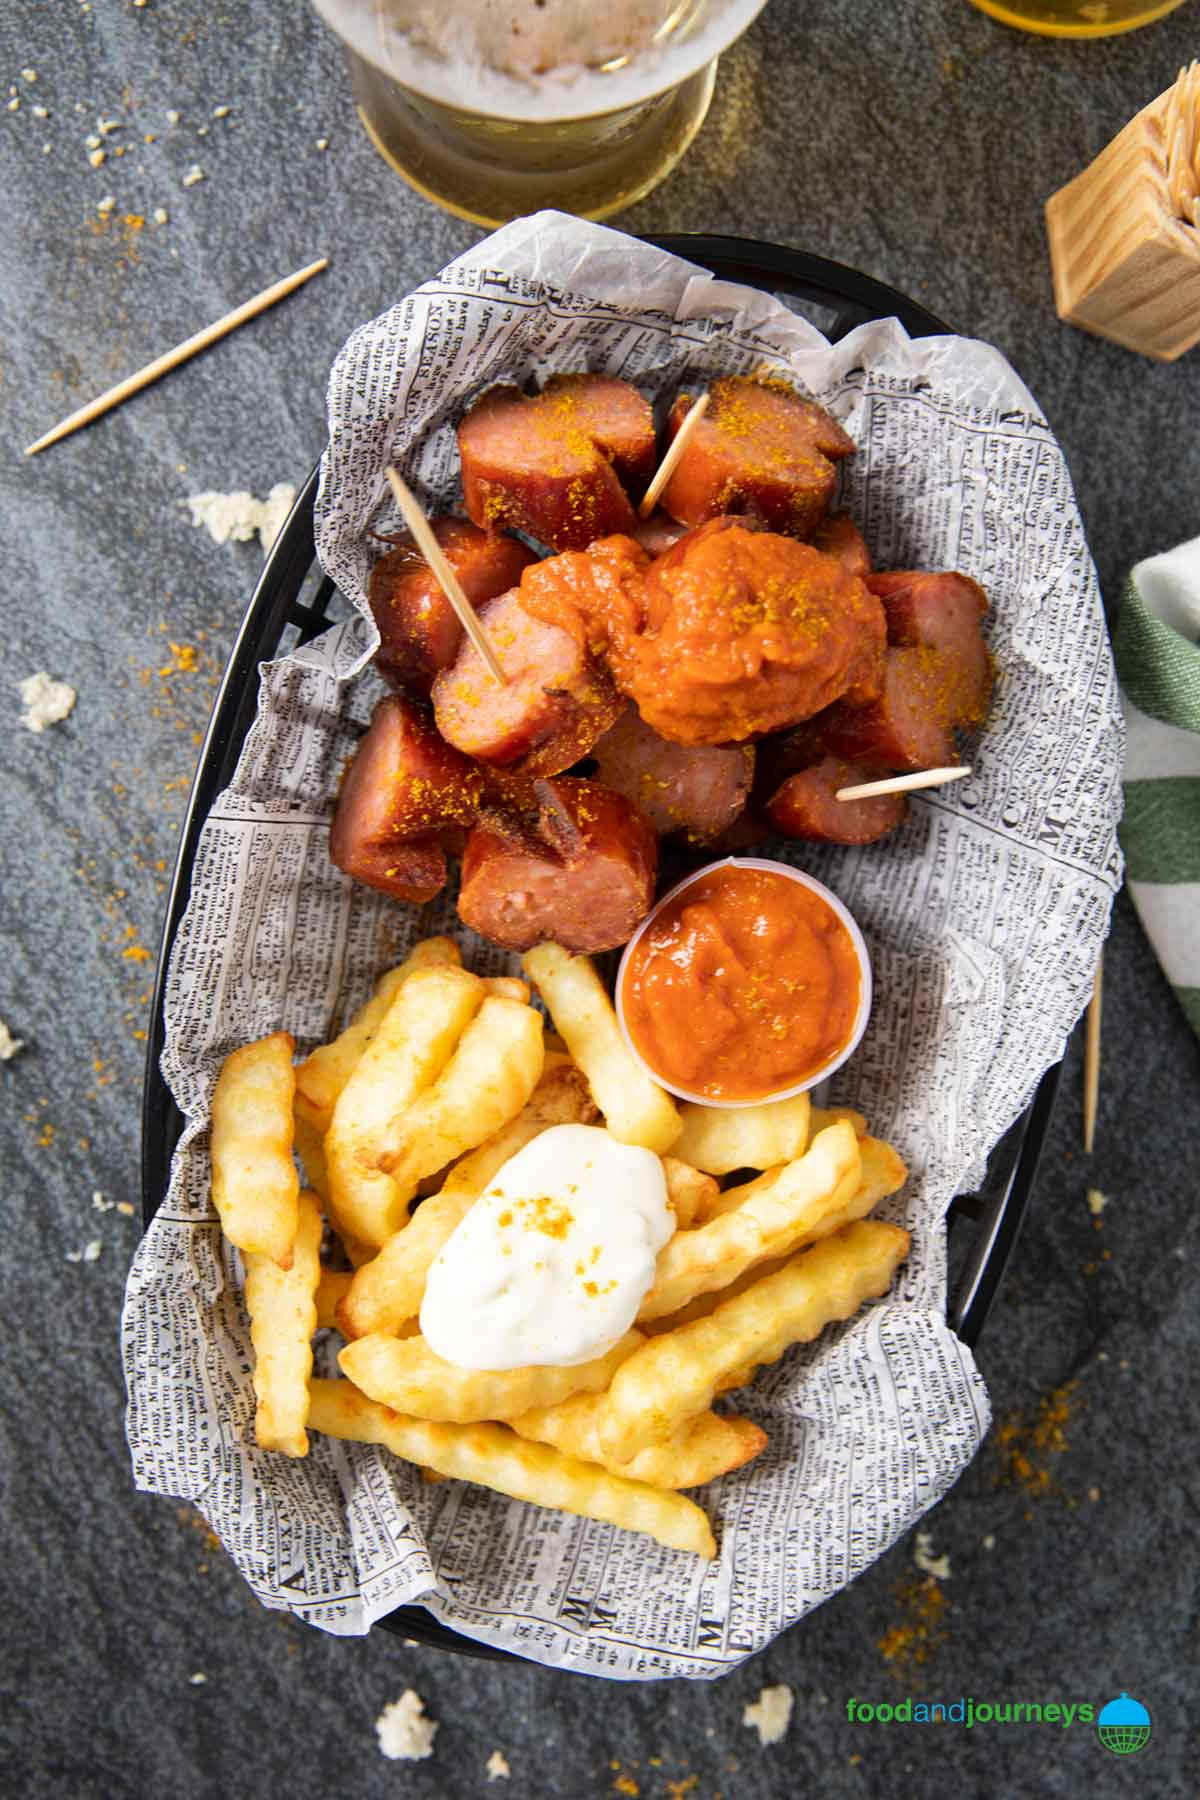 Overhead shot of a serving of currywurst, with a glass of beer on the side.